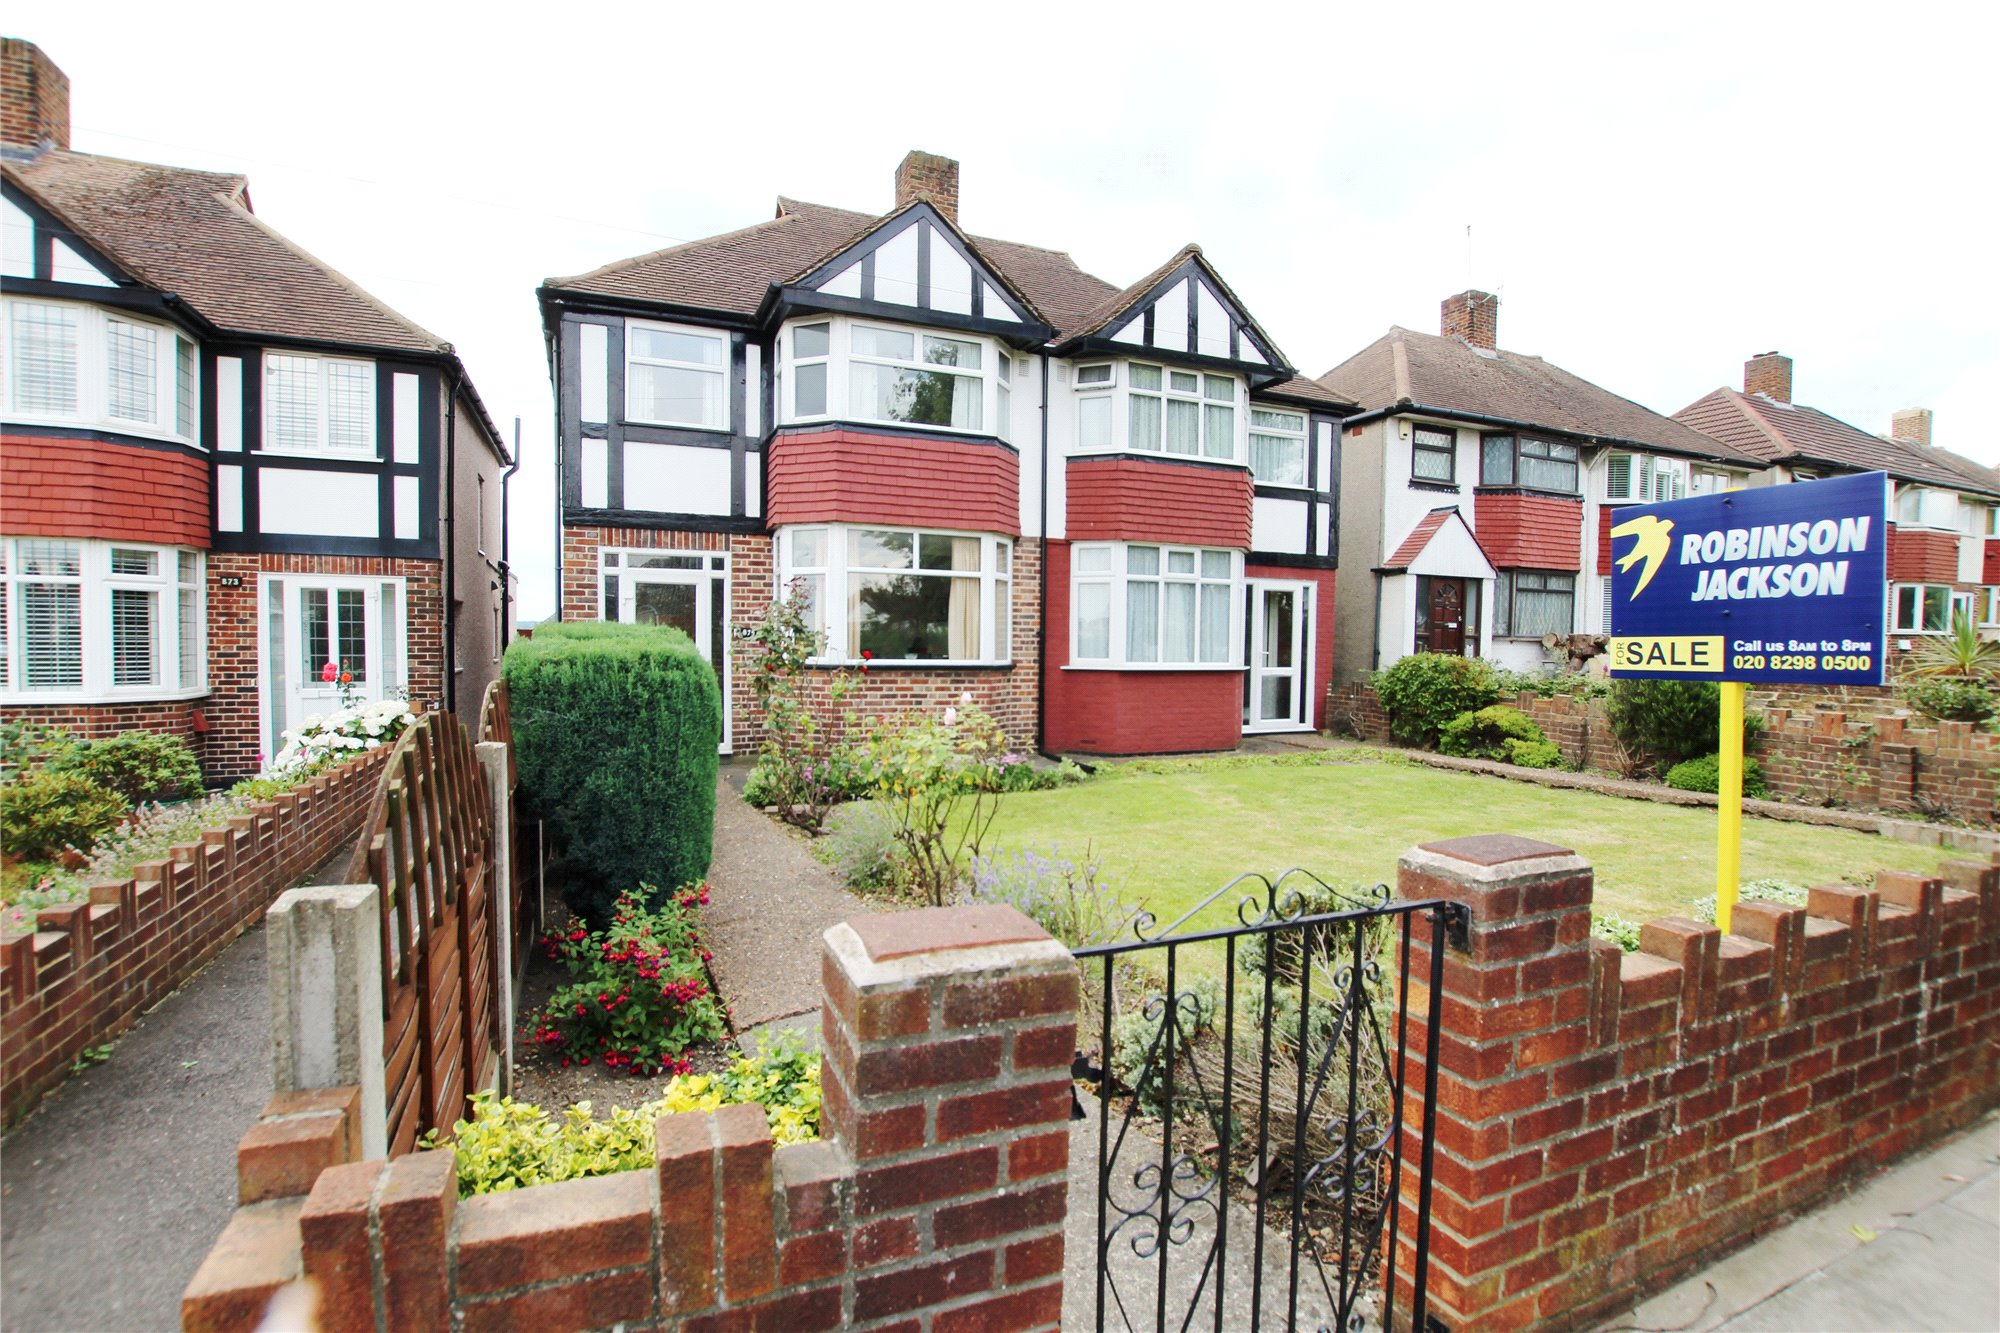 East Rochester Way, Blackfen, Sidcup, DA15